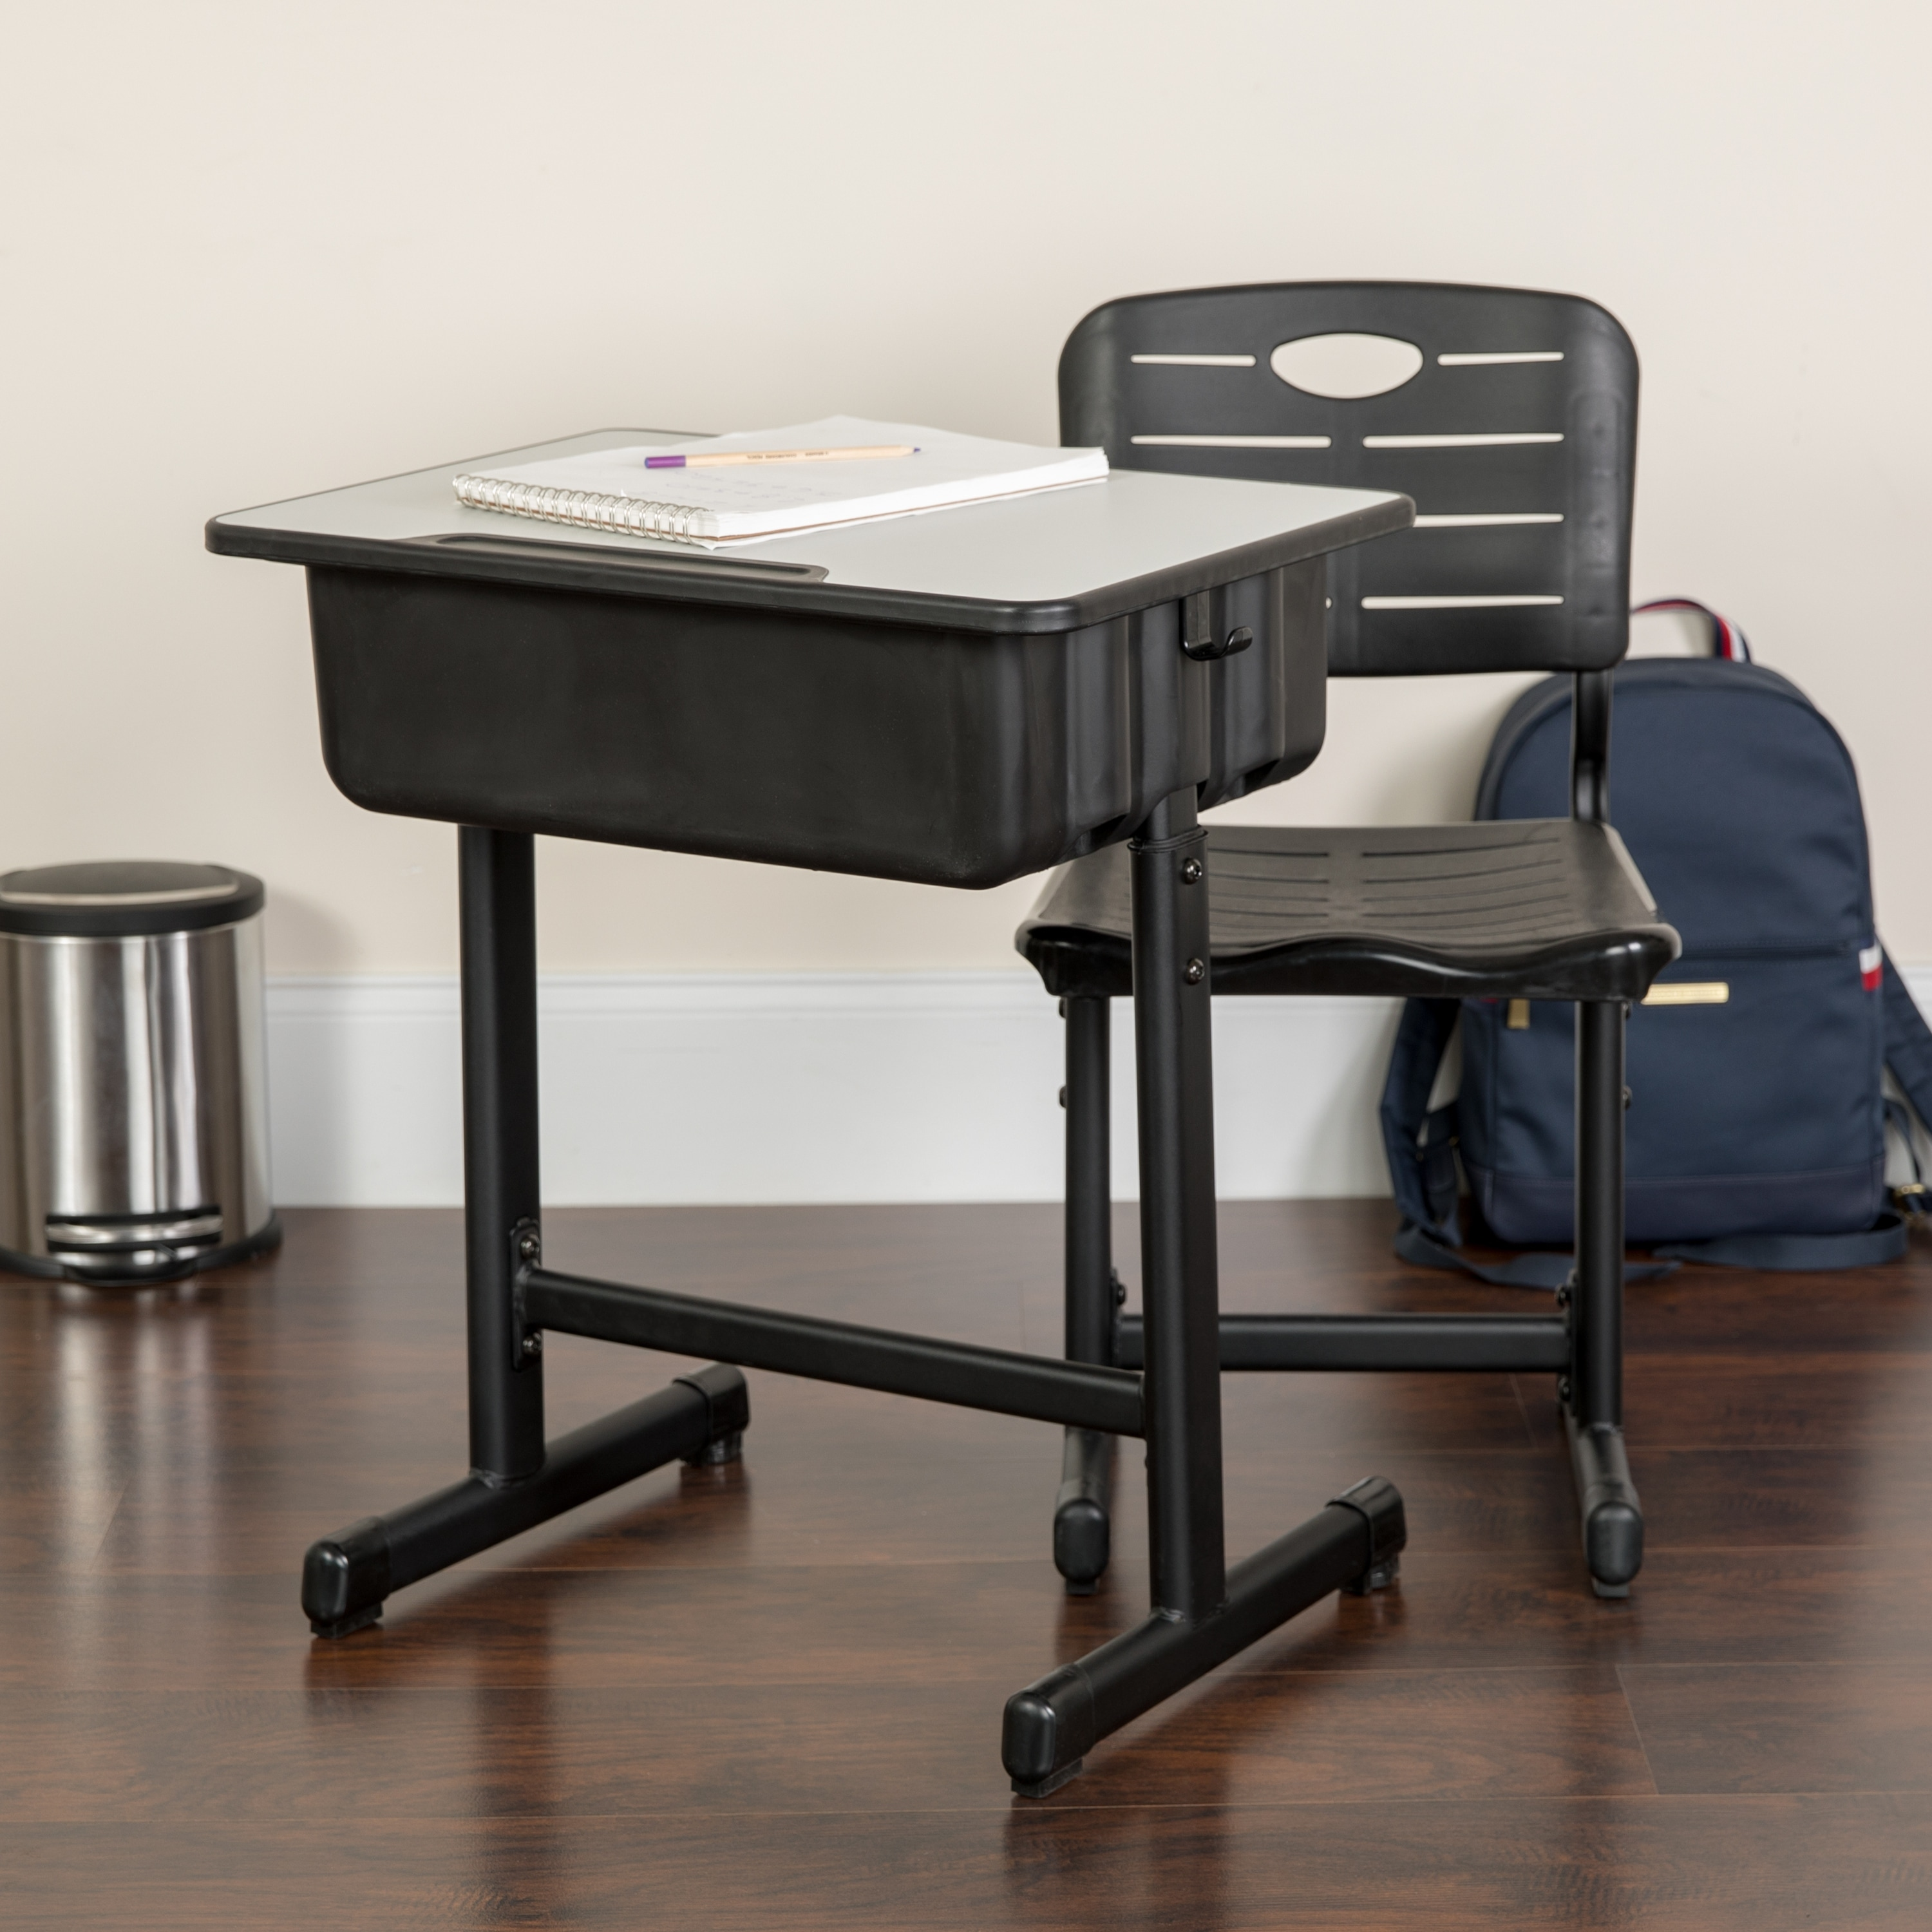 Pedestal Frame Adjustable Height Student Desk And Chair 23 63 W X 17 75 D X 28 25 31 50 H On Sale Overstock 10677719